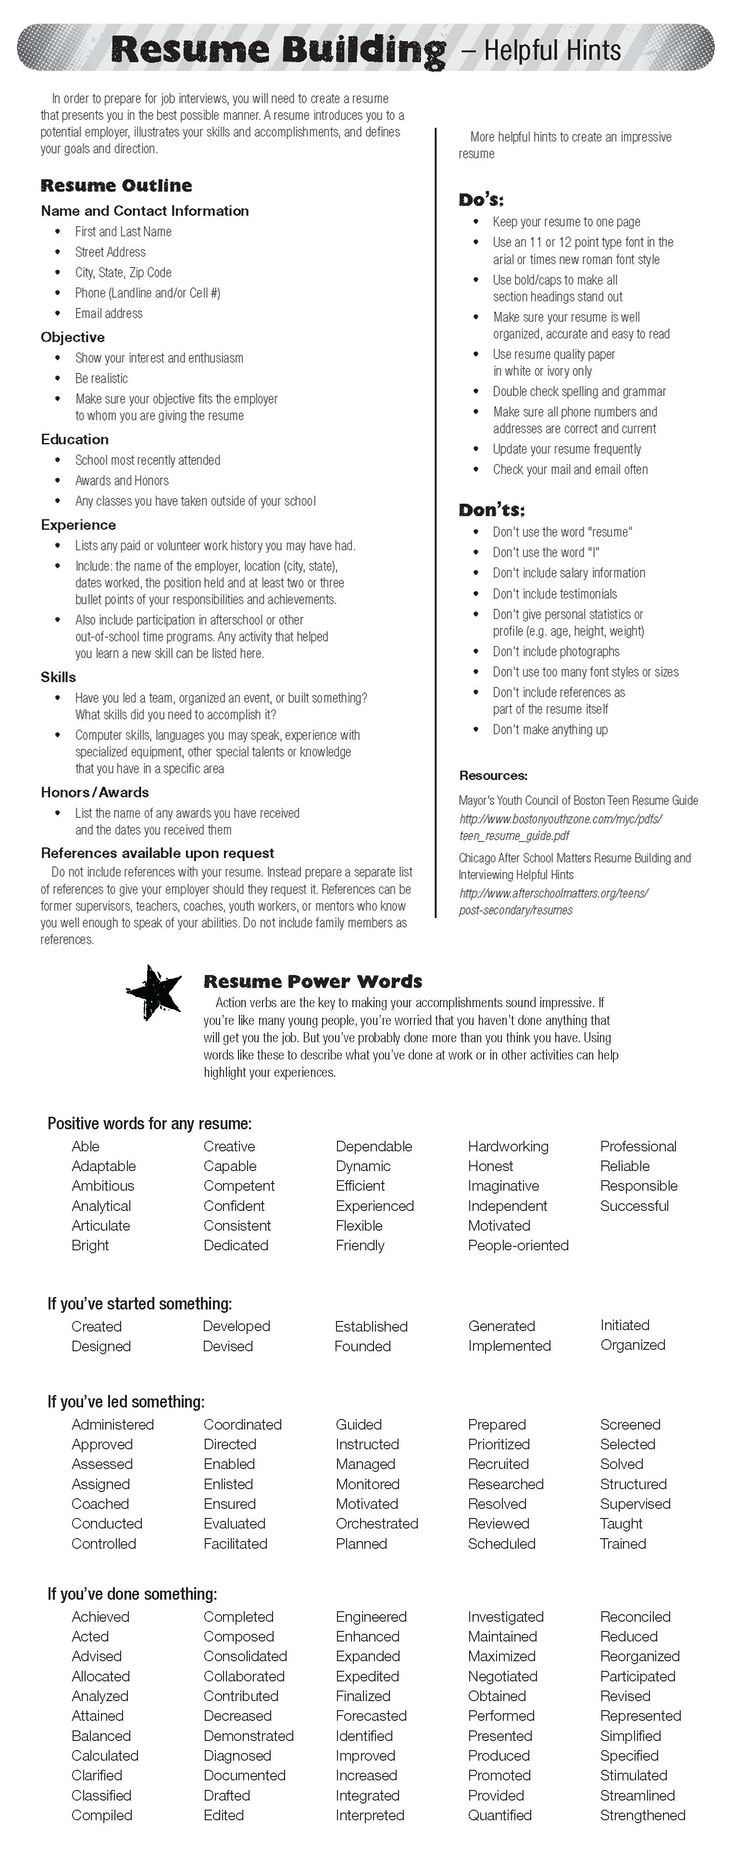 Opposenewapstandardsus  Gorgeous  Ideas About Resume On Pinterest  Cv Format Resume Cv And  With Lovable  Ideas About Resume On Pinterest  Cv Format Resume Cv And Resume Templates With Delectable Example Resumes For Jobs Also Resume For Administrative Job In Addition Registrar Resume And Resume Samples For Jobs As Well As Medical Scheduler Resume Additionally Professional Academic Resume From Pinterestcom With Opposenewapstandardsus  Lovable  Ideas About Resume On Pinterest  Cv Format Resume Cv And  With Delectable  Ideas About Resume On Pinterest  Cv Format Resume Cv And Resume Templates And Gorgeous Example Resumes For Jobs Also Resume For Administrative Job In Addition Registrar Resume From Pinterestcom